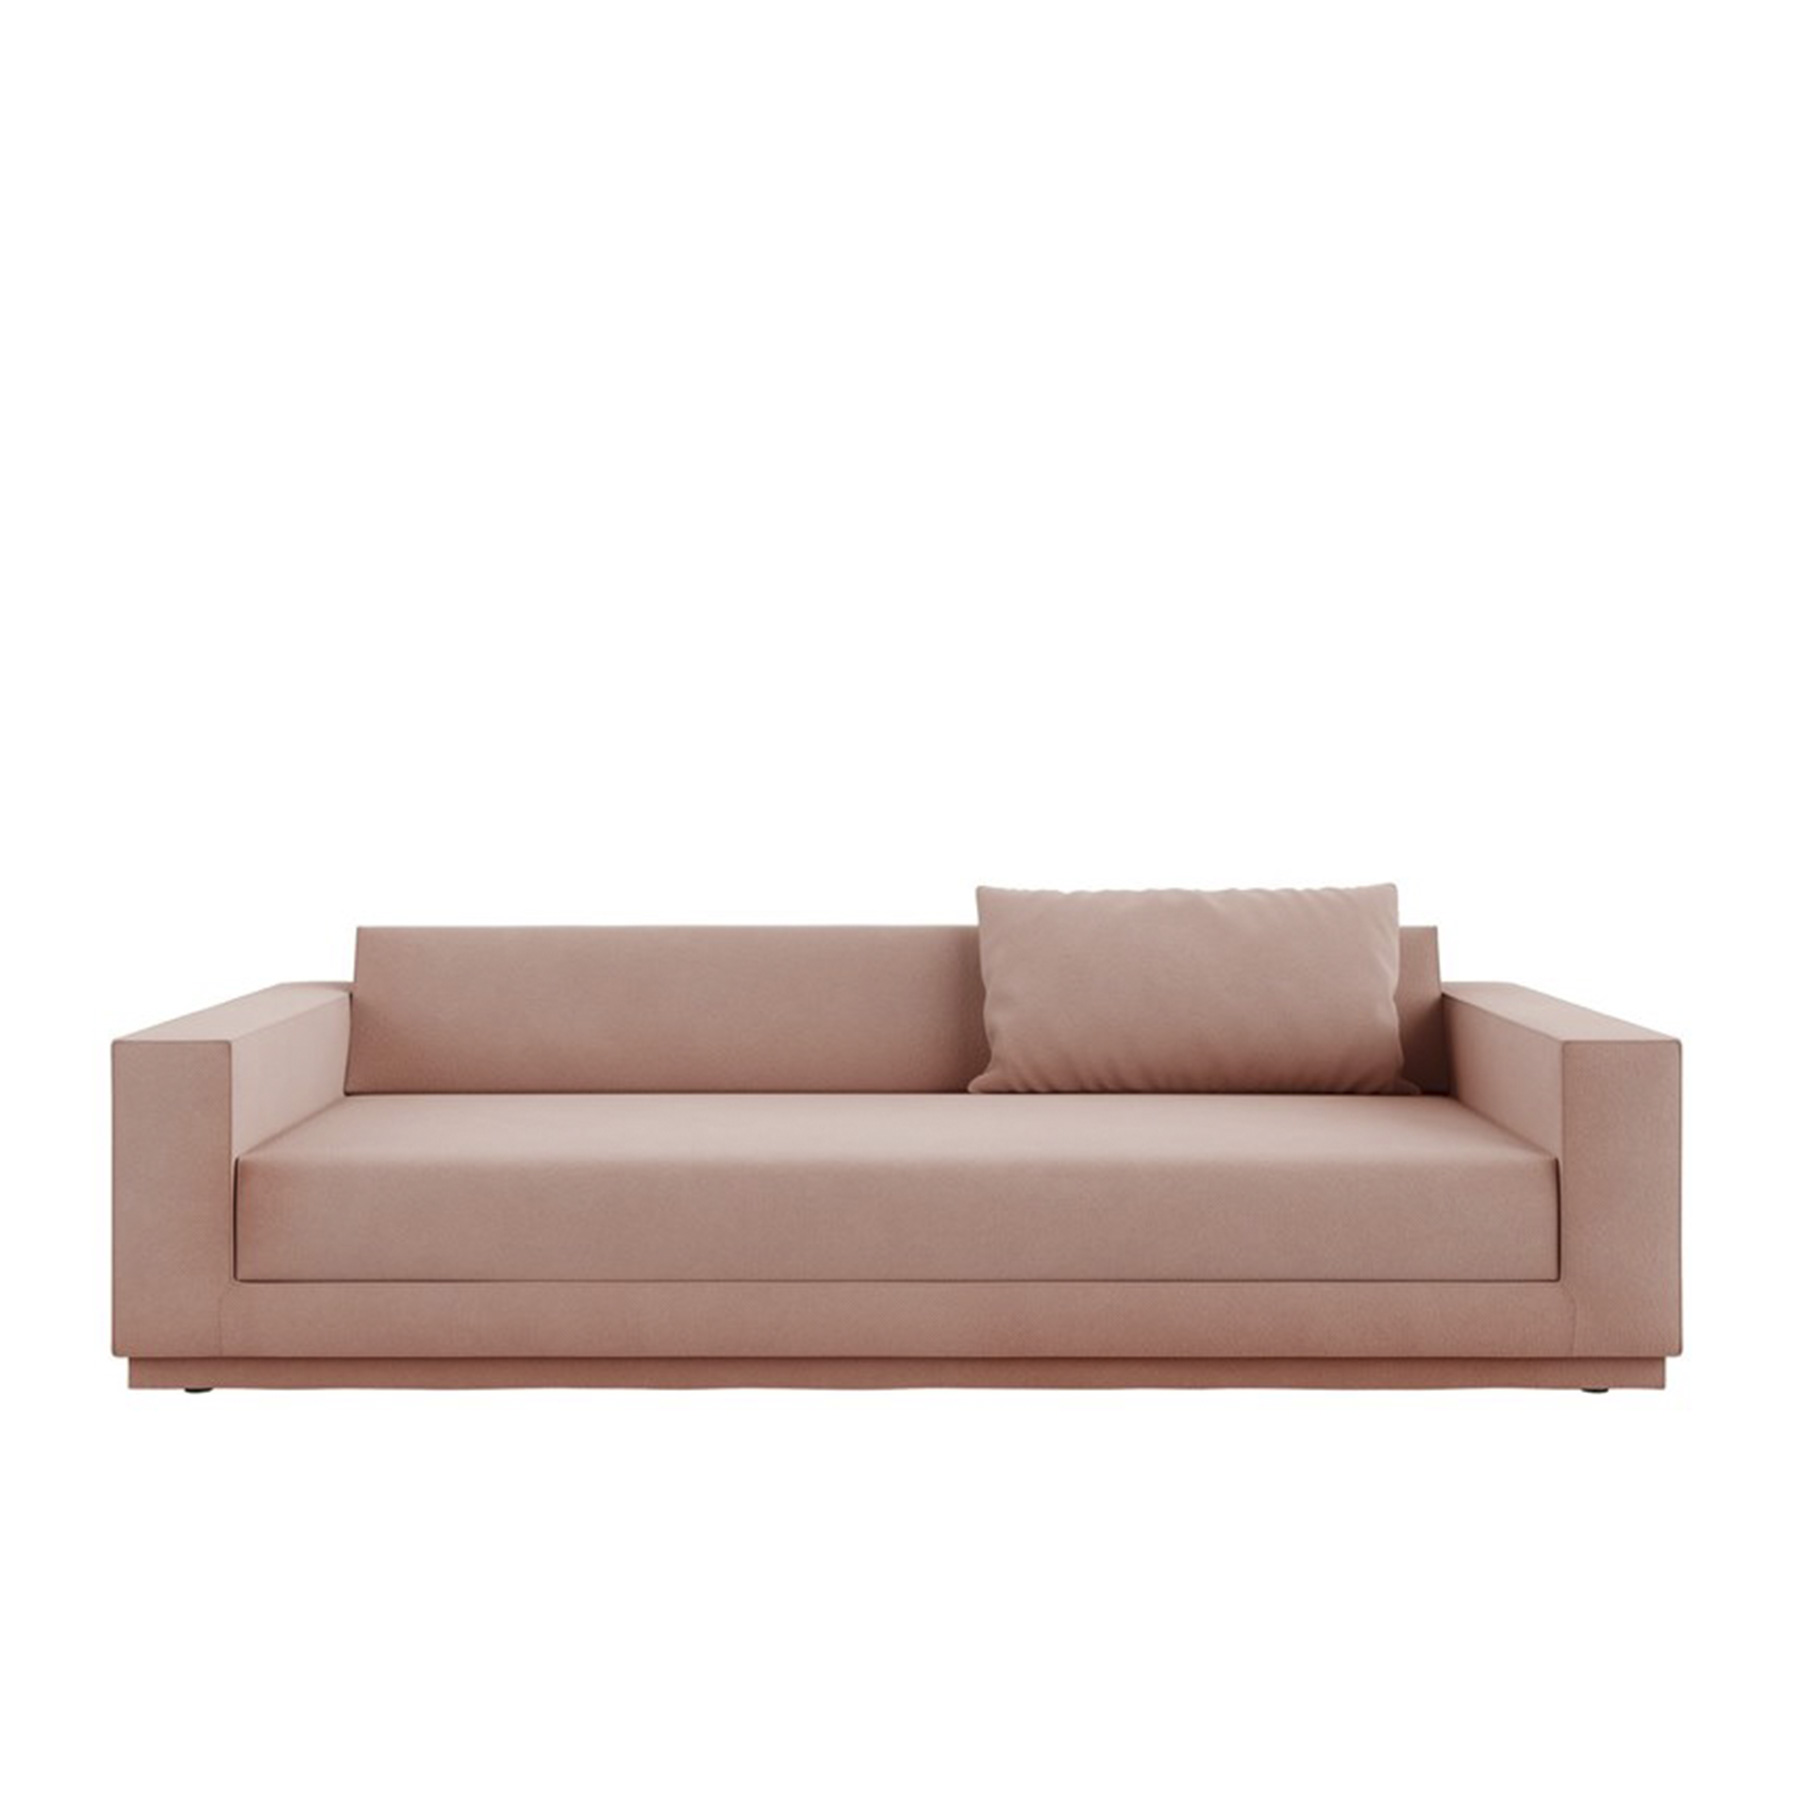 Havana Sofa Bed - Havana is a synthesis of elegance and flexibility.‎ From an elegant centrepiece of any space, it can be transformed with a simple action into a bed with storage.‎ Versatile also by virtue of the choice of a number of removable covers and base options in aluminium or wengè finish.‎